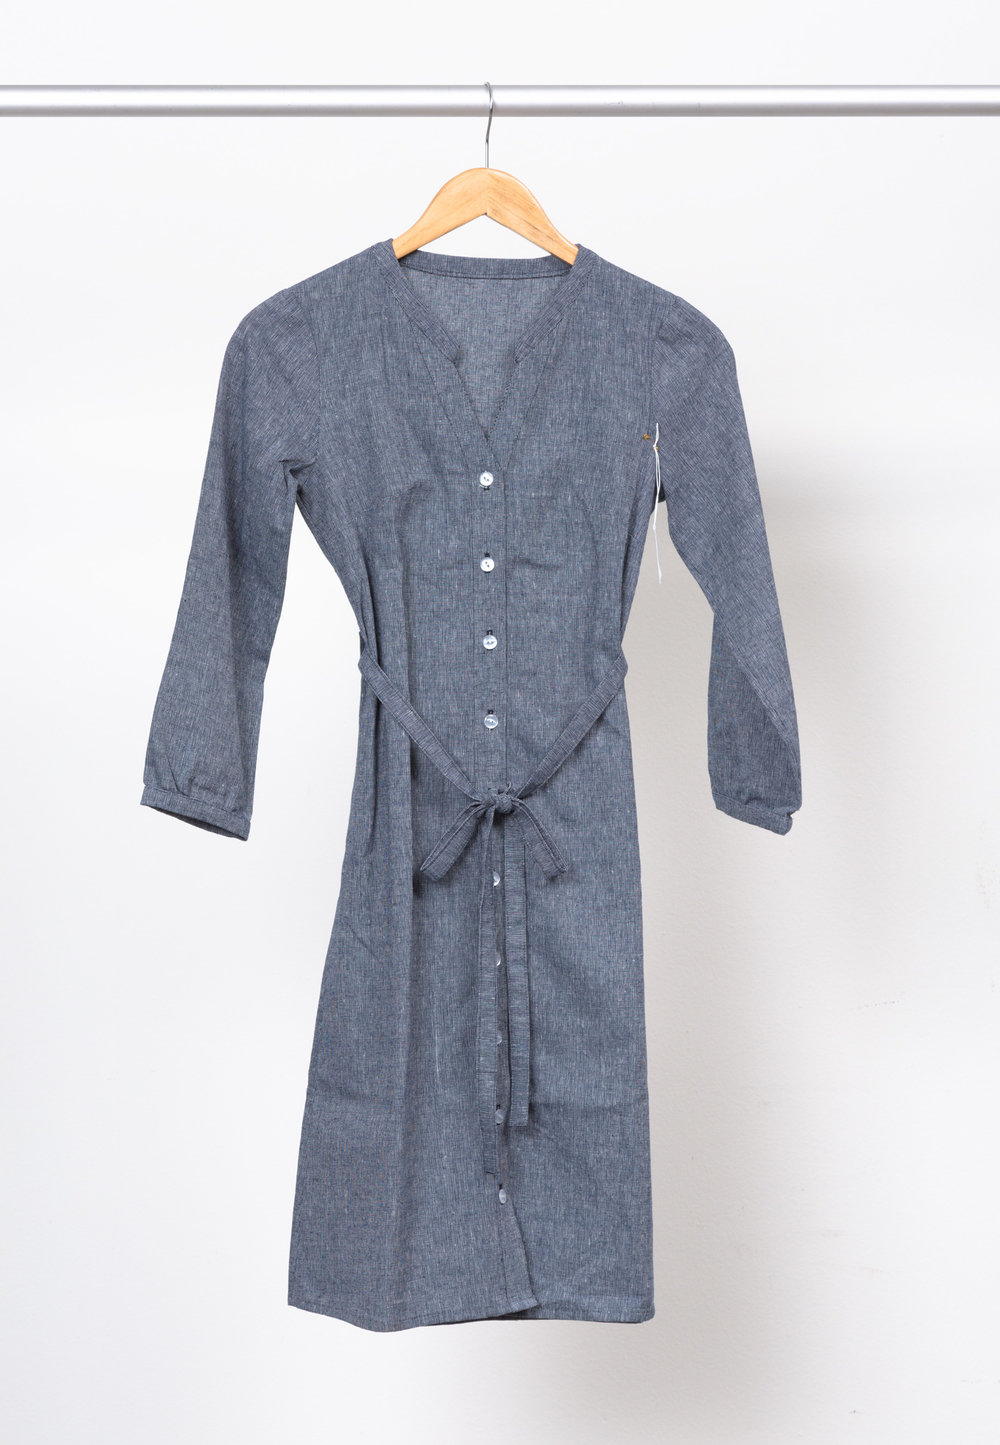 BONN SHIRT DRESS   BY   ITCH TO STITCH  ,   ESSEX YD HOMESPUN